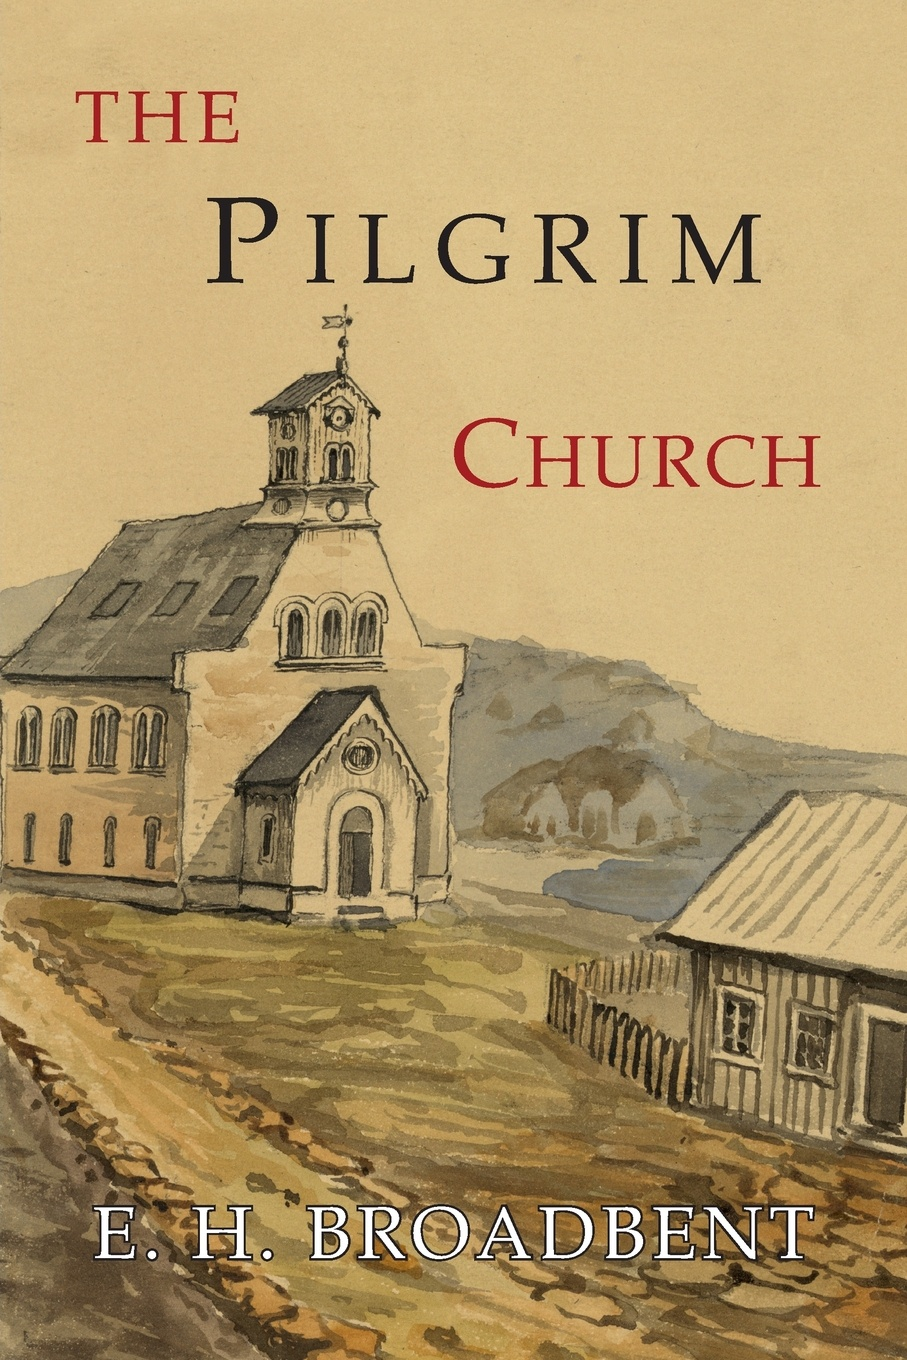 Фото - E. H. Broadbent The Pilgrim Church. Being Some Account of the Continuance Through Succeeding Centuries of Churches Practising the Principles Taught and Exemplified in The New Testament julian roderick felix jones and the dawn of the brethren